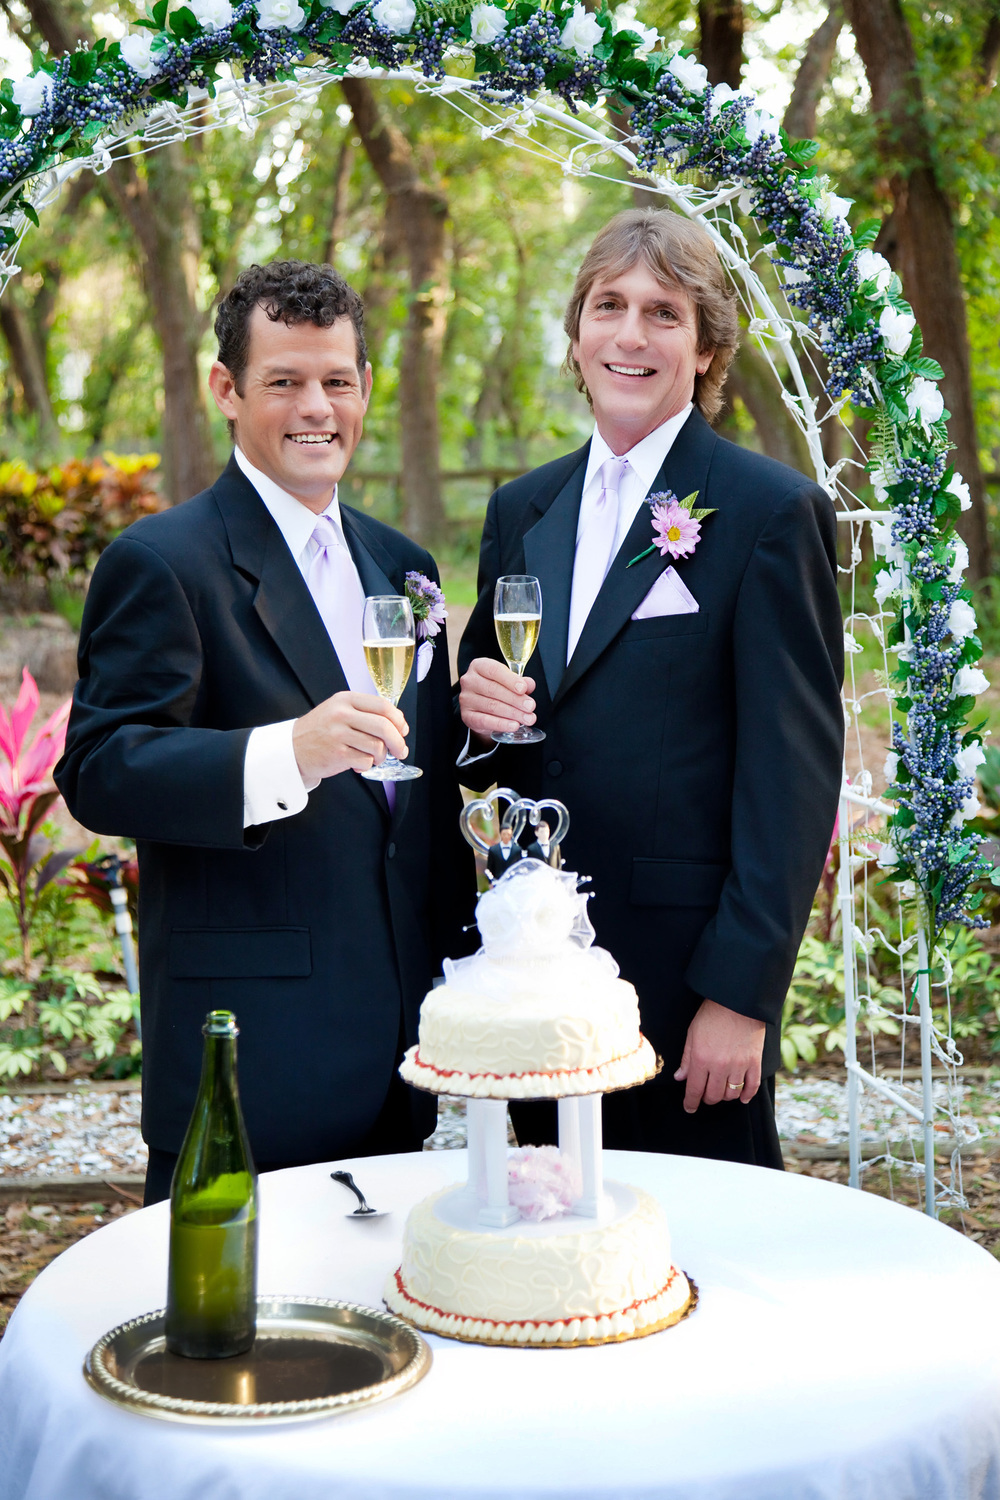 Heartland-Weddings-LGBT-gay-male-couple-at-wedding-reception-l.jpg